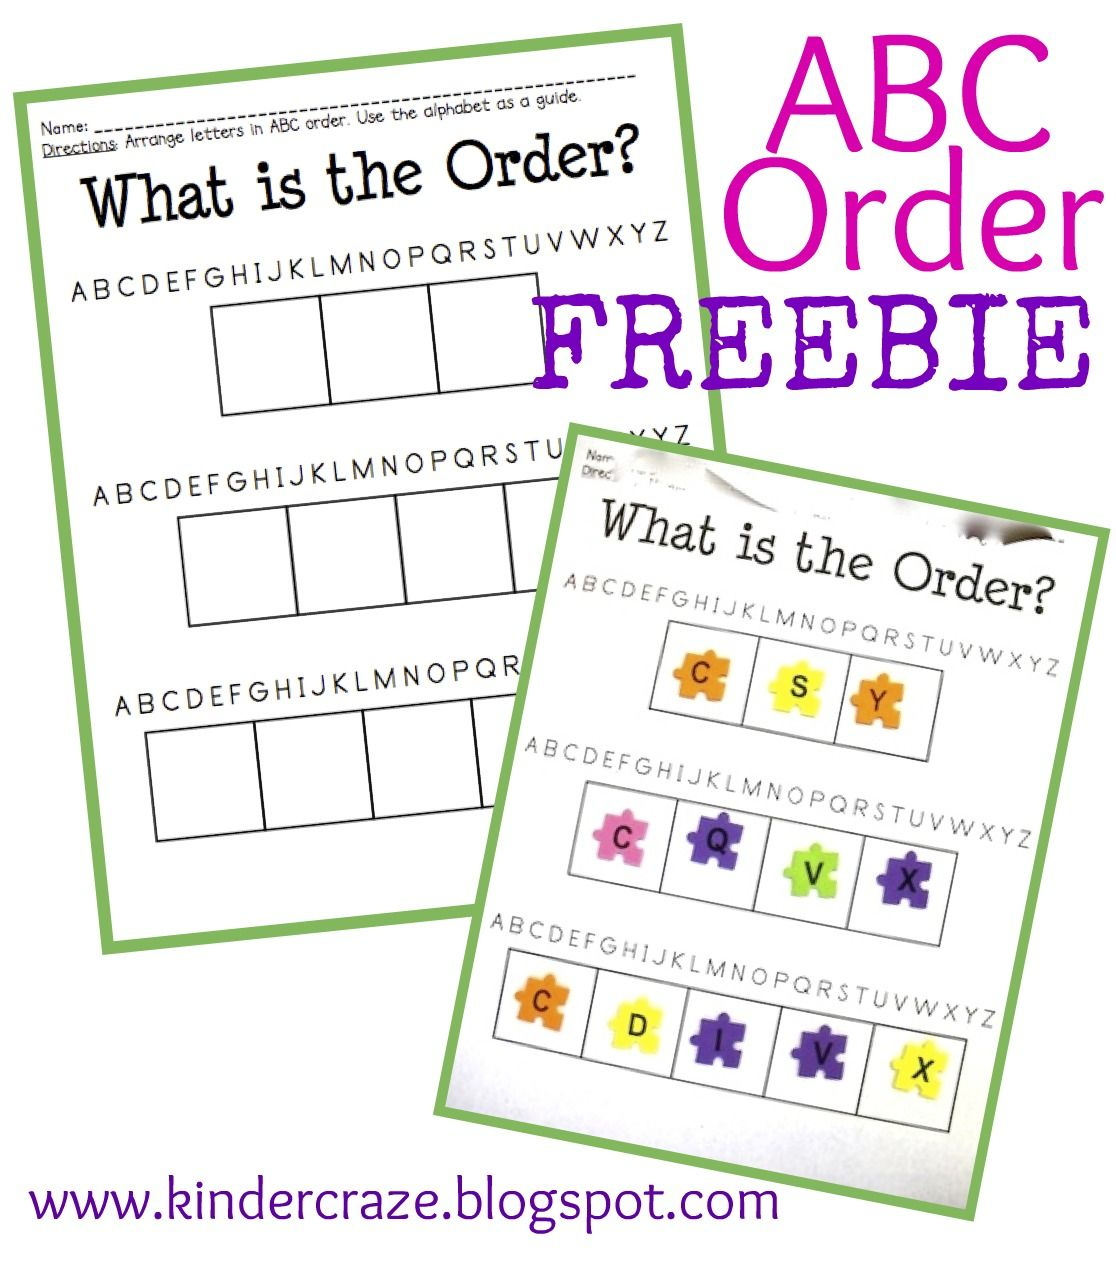 Abc Order Practice Freebie From The Kinder Craze Store